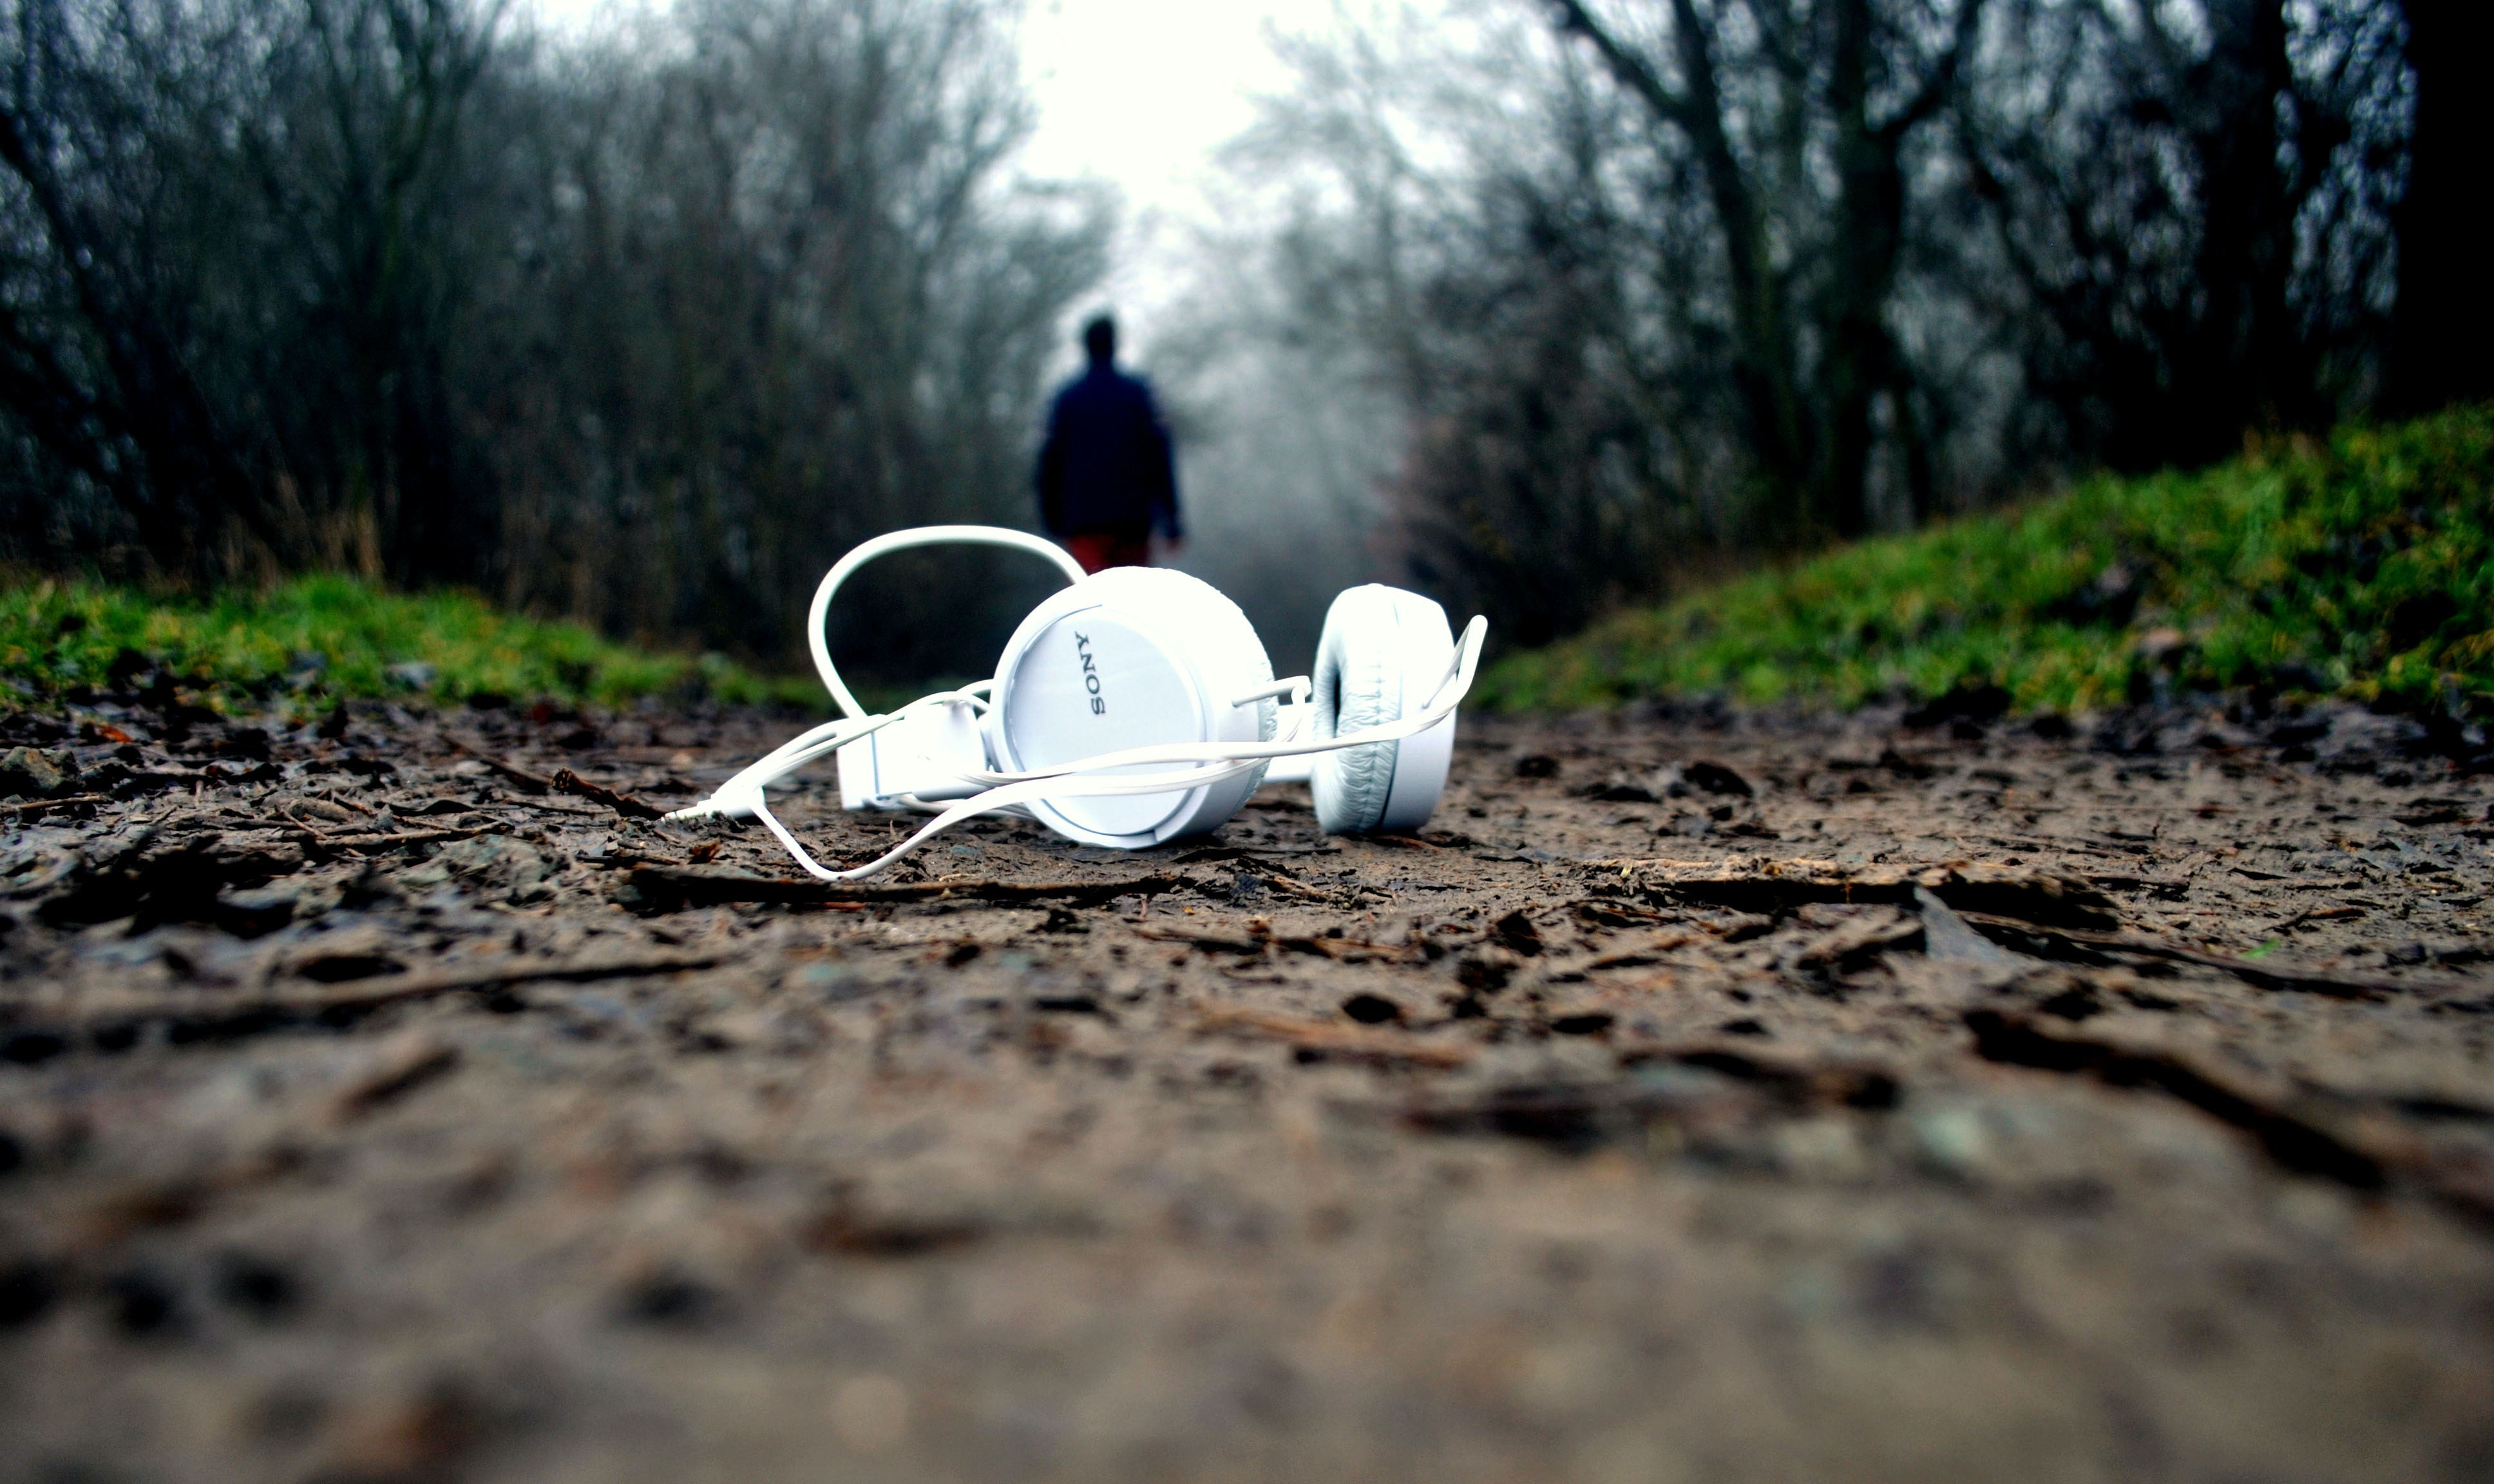 A white pair of headphones left behind on a dirt path